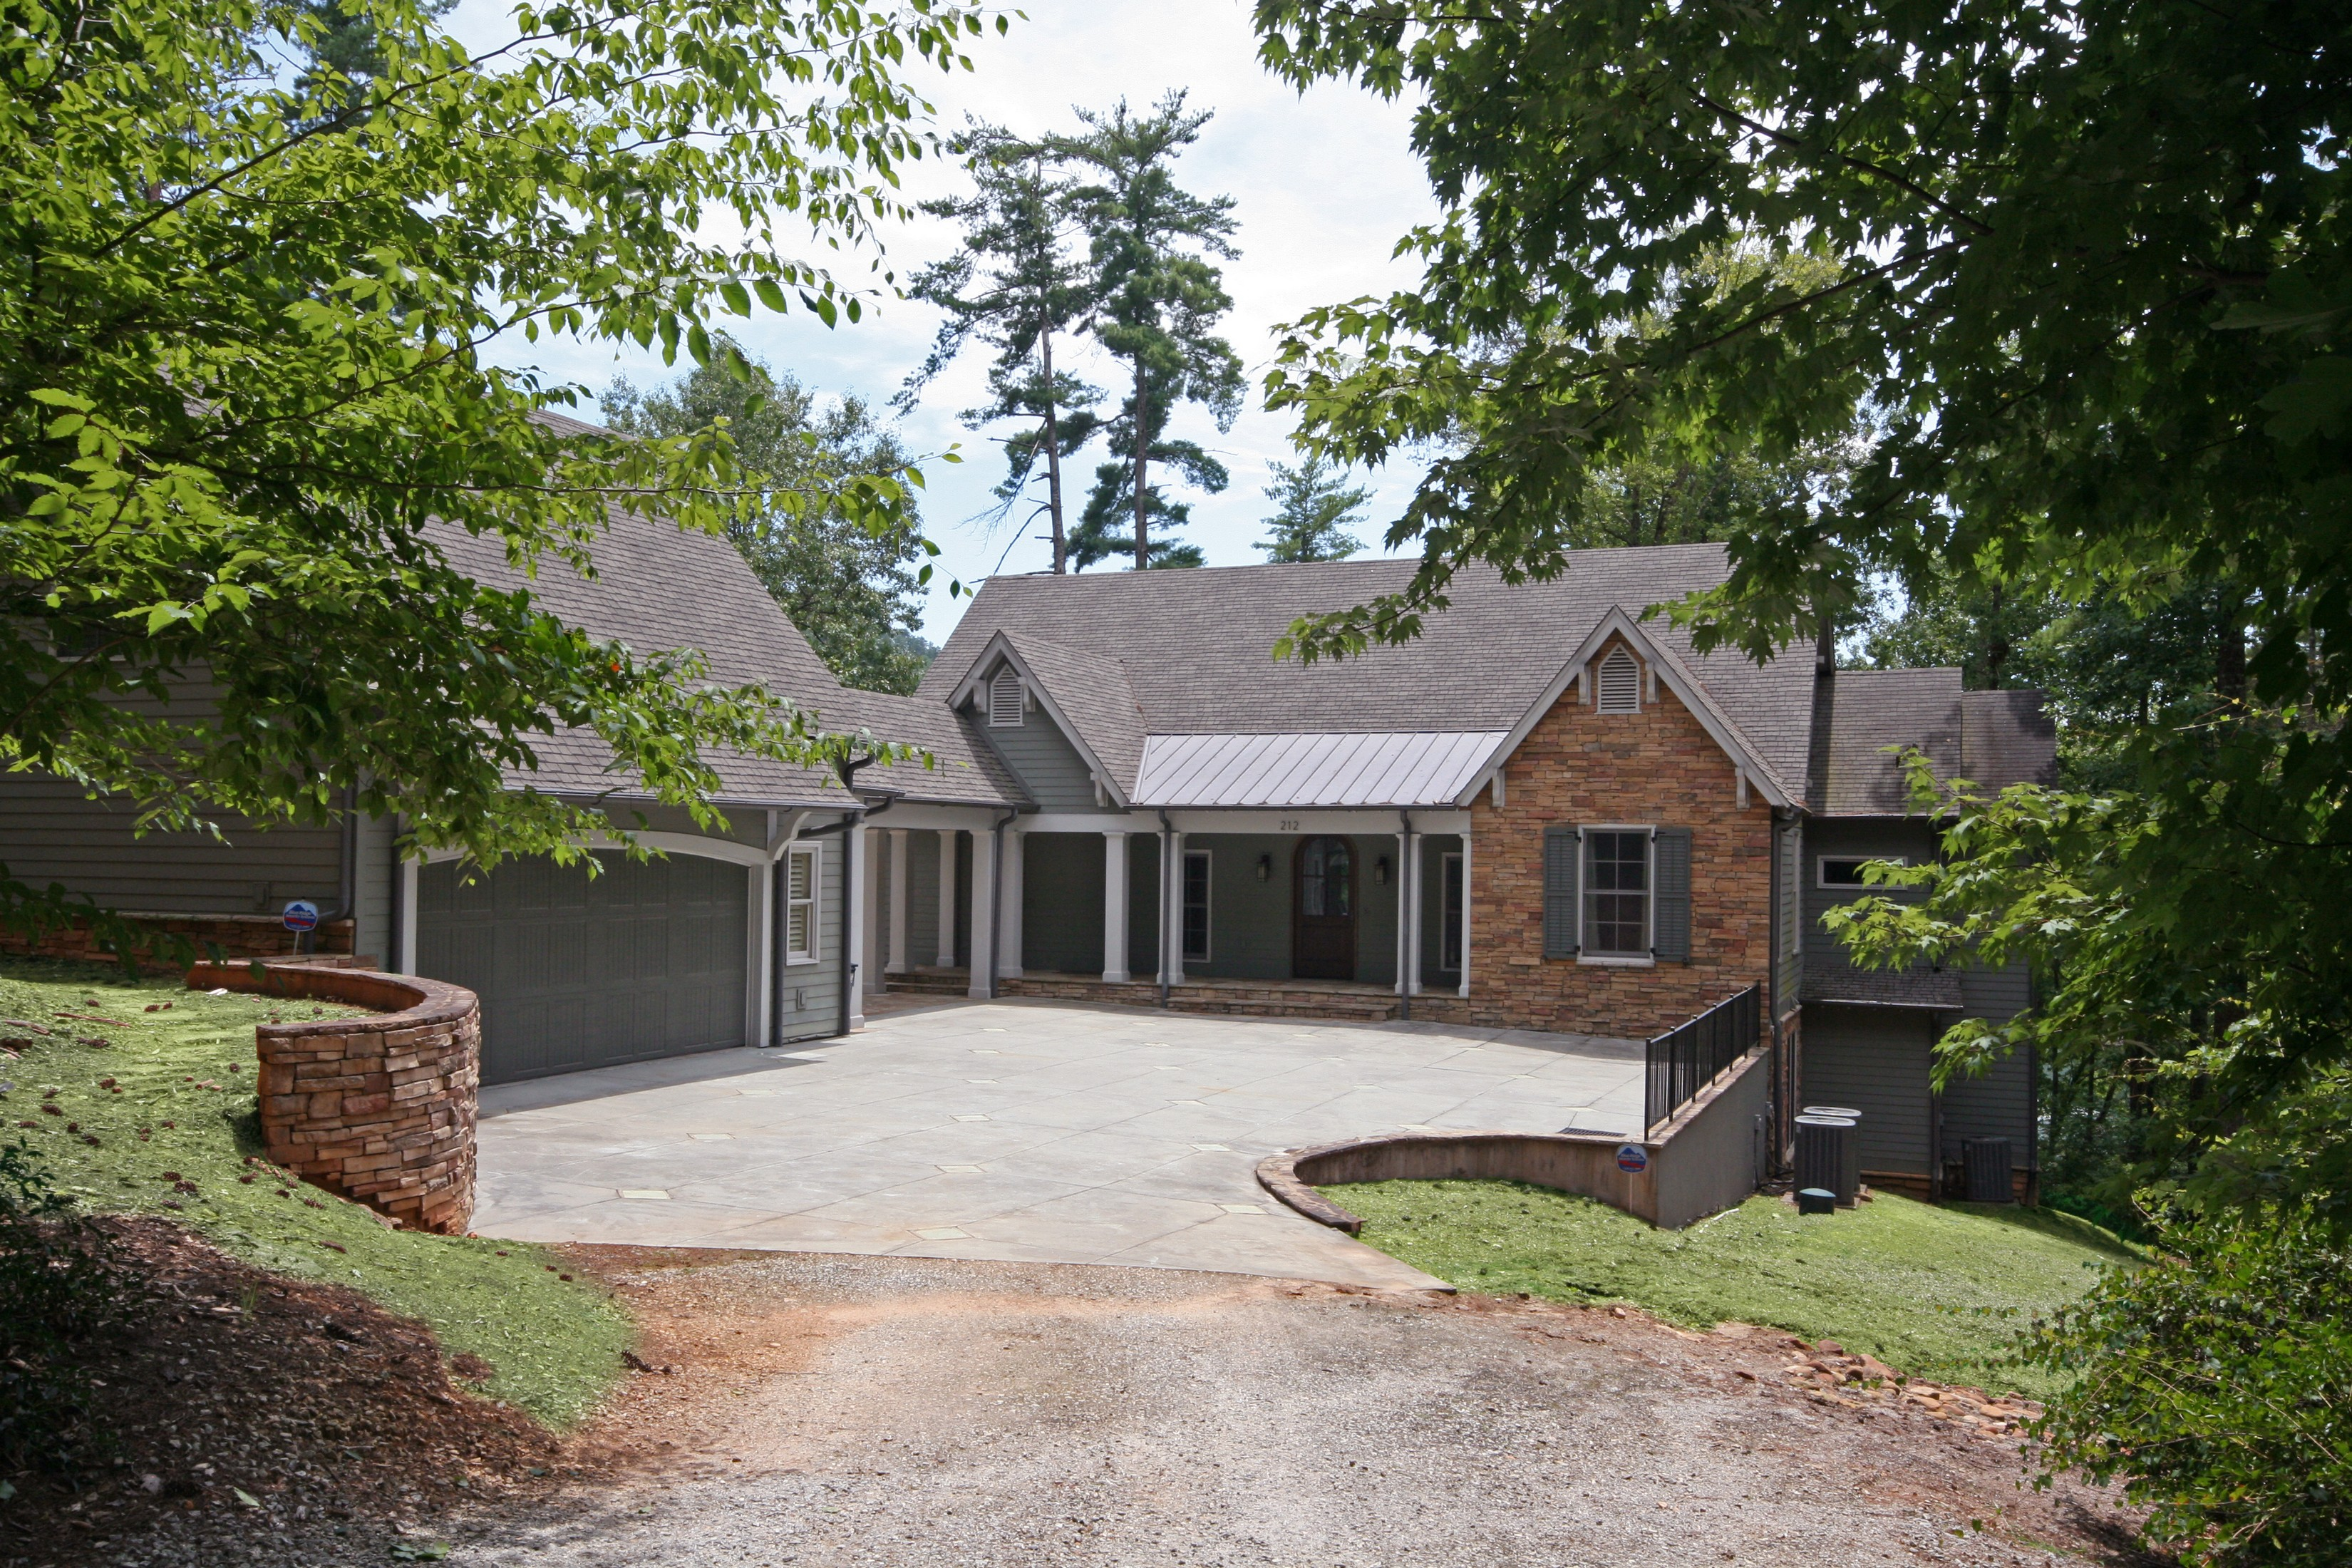 Single Family Home for Sale at Exceptional Waterfront Home Enjoying Lake & State Park Views 212 Waterlake Drive The Cliffs At Keowee Vineyards, Sunset, South Carolina, 29685 United States